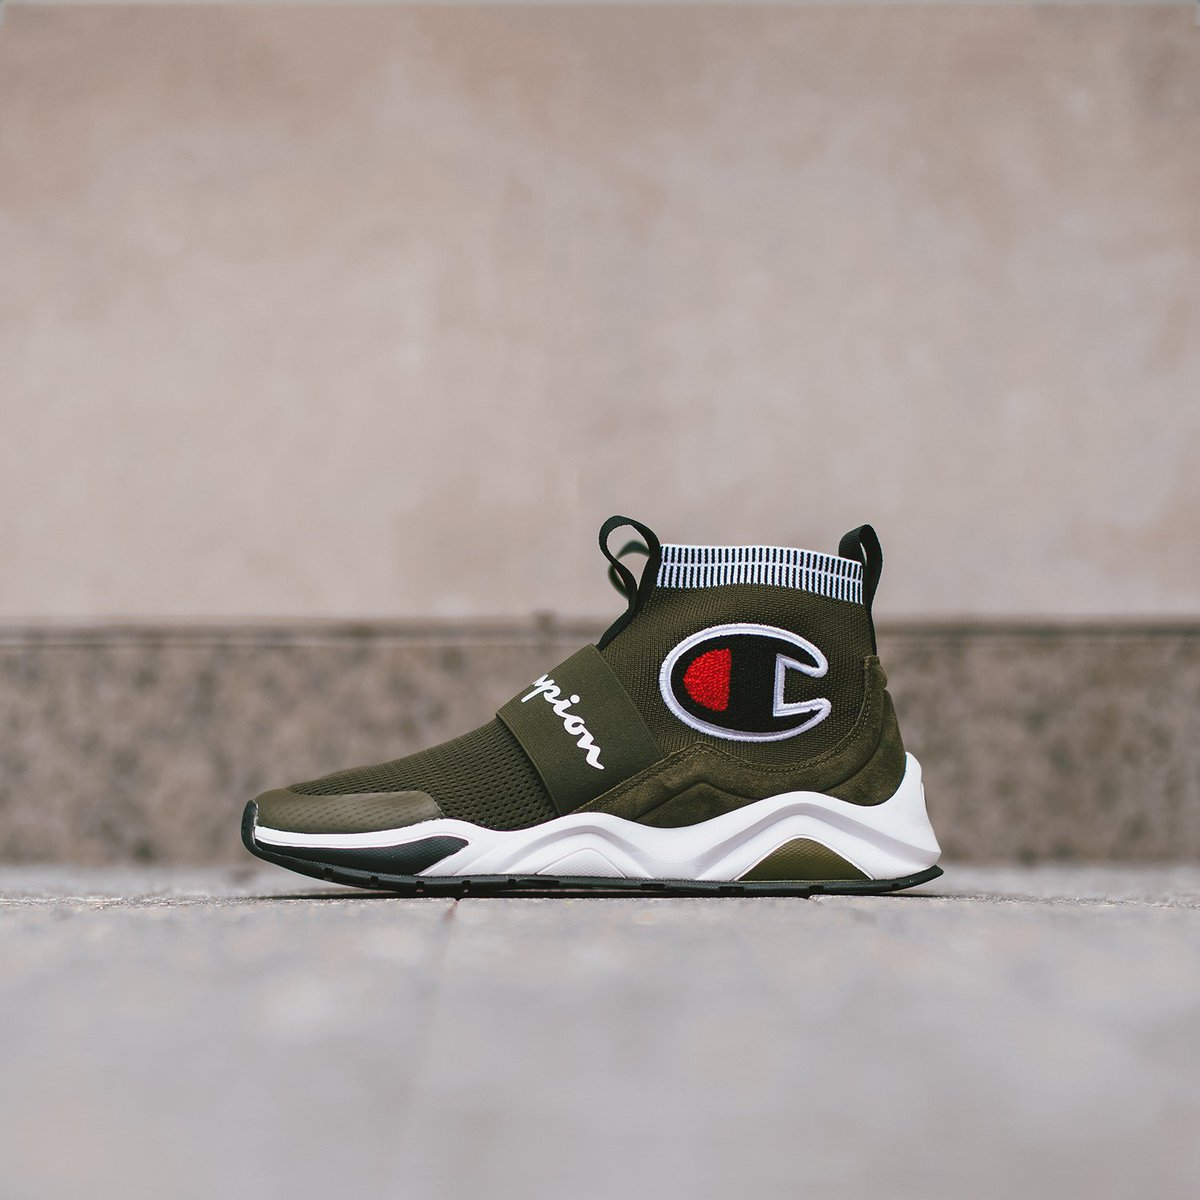 fc91c154d65e4 The Men s Champion Rally Pro is on the RISE!!! Have you grabbed your pair  yet!  Don t miss out and cop your pair today here  https   goo.gl DhyFoQ ...